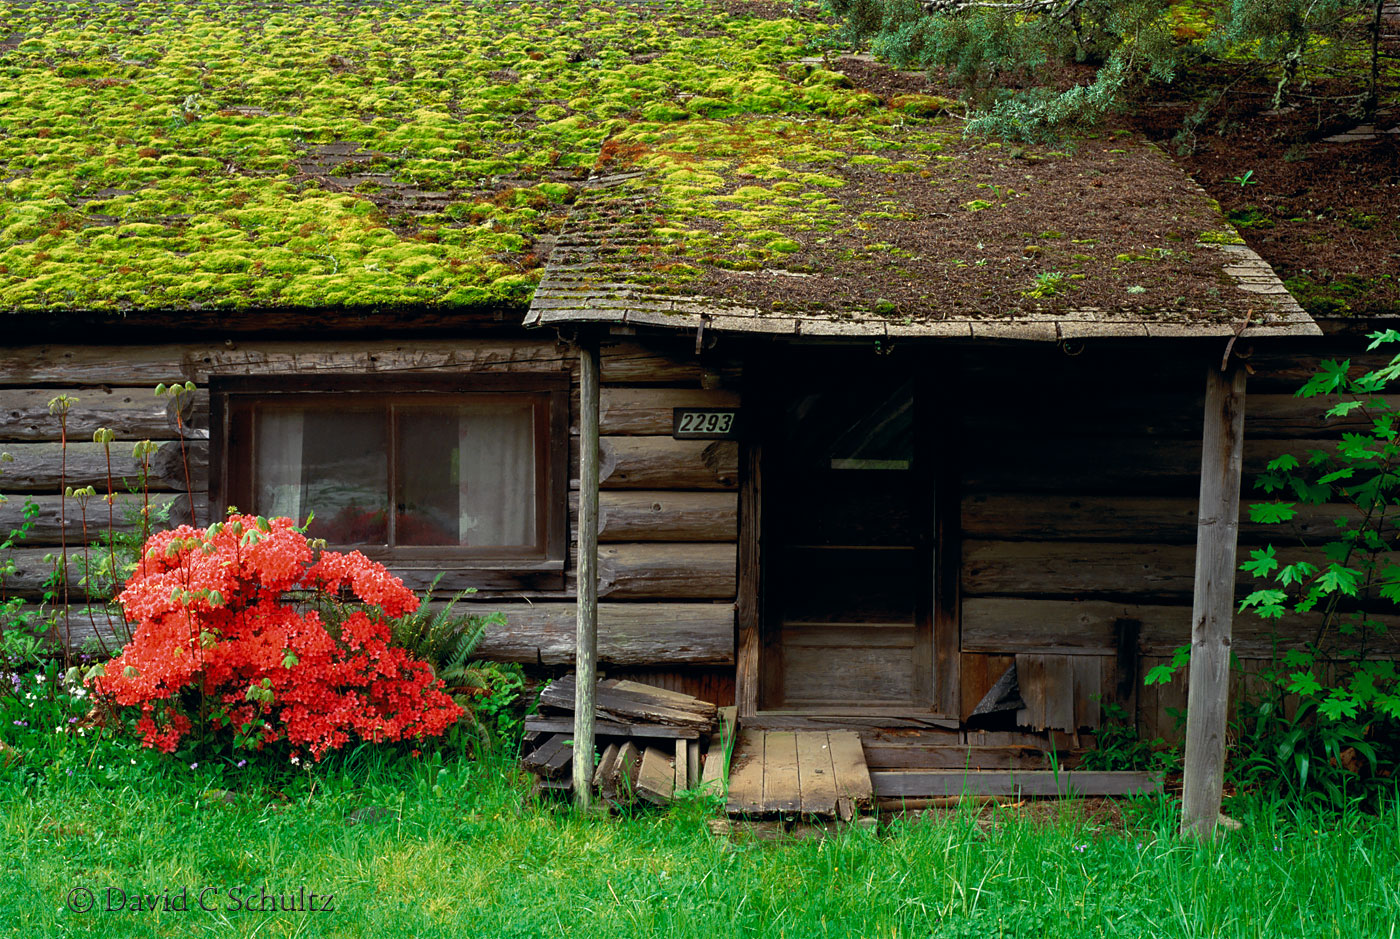 Log cabin along the North Umpqua River, OR - Image #129-29